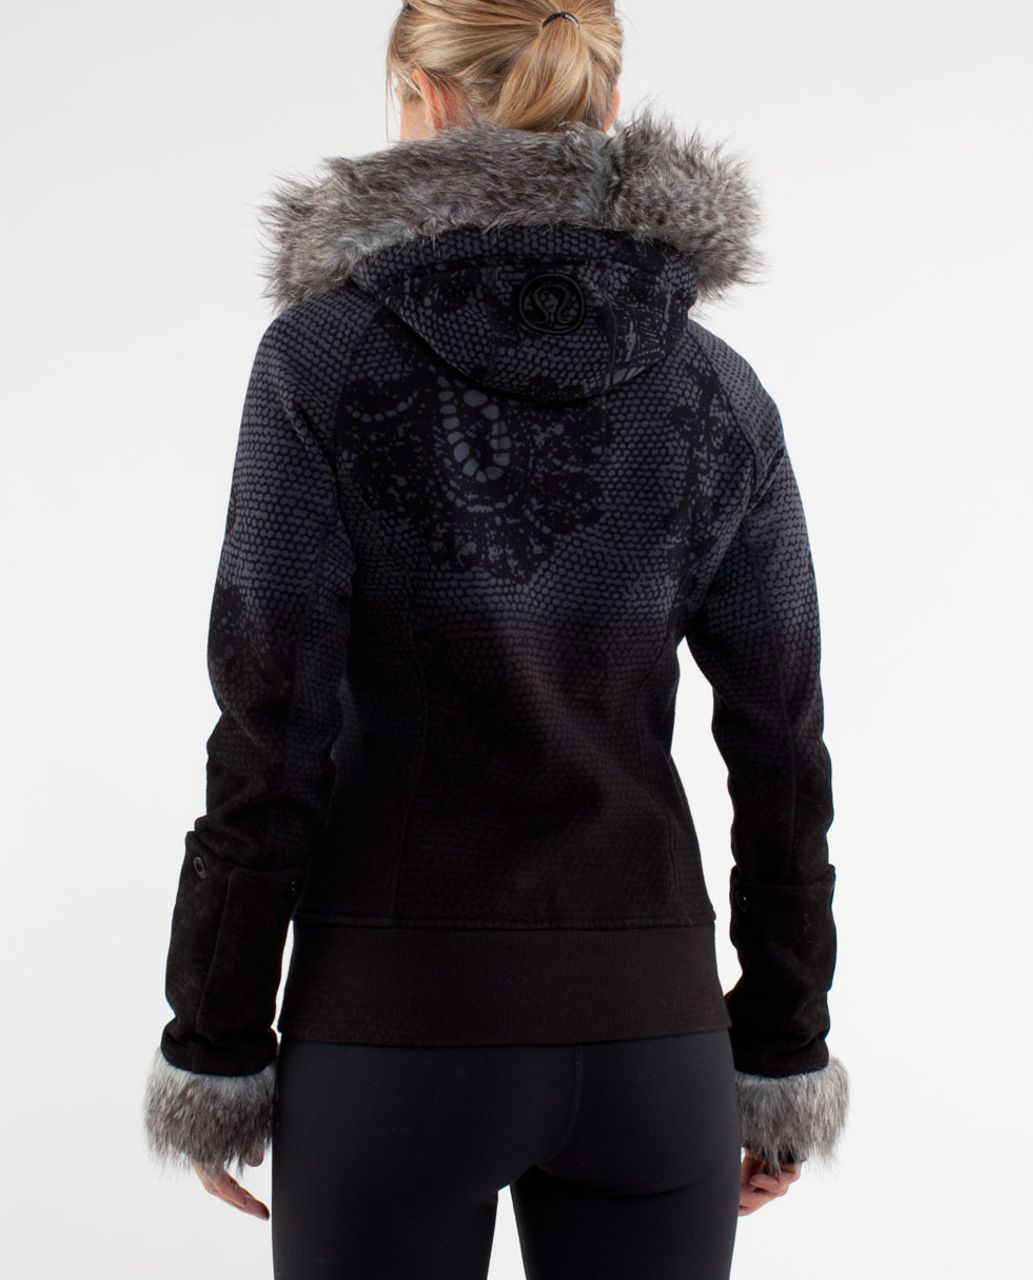 Lululemon Scuba Hoodie *Detachable Fur - Coal Black Orbit Lace Print